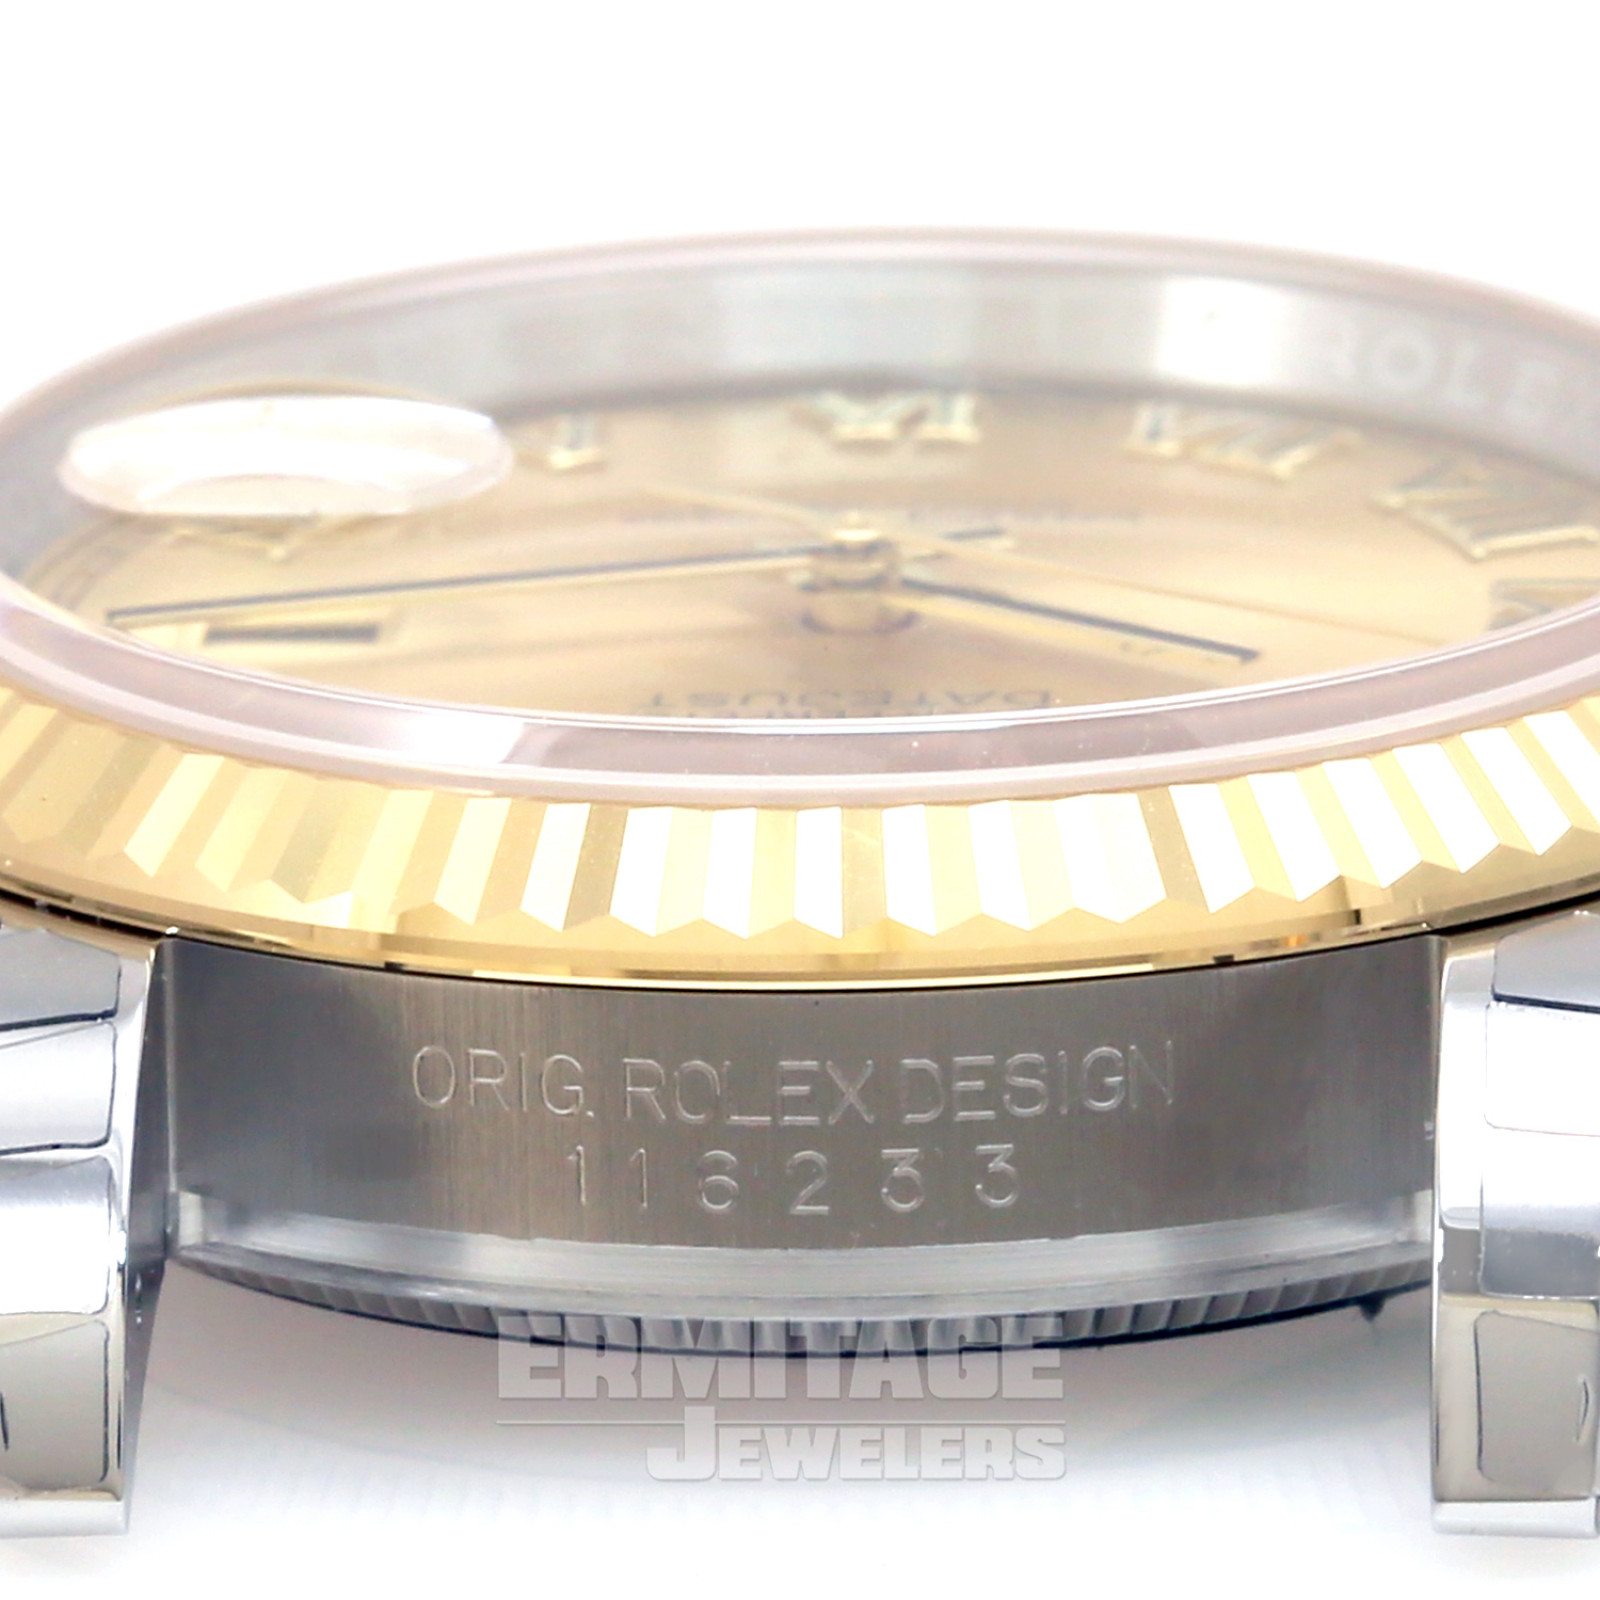 Rolex Datejust 116233 36 mm Gold & Steel on Oyster